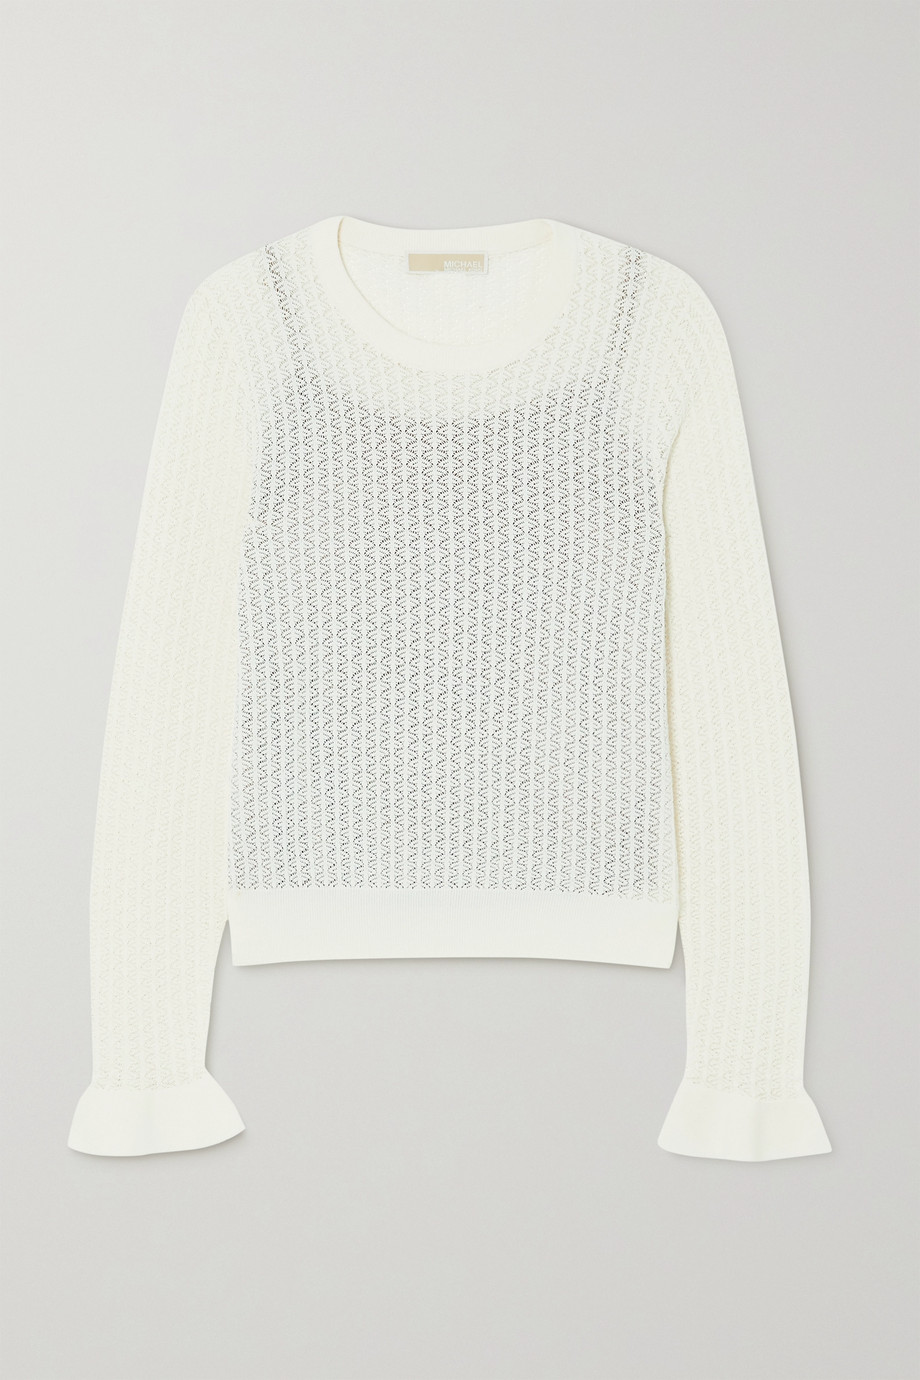 MICHAEL Michael Kors Crotchet-knit top